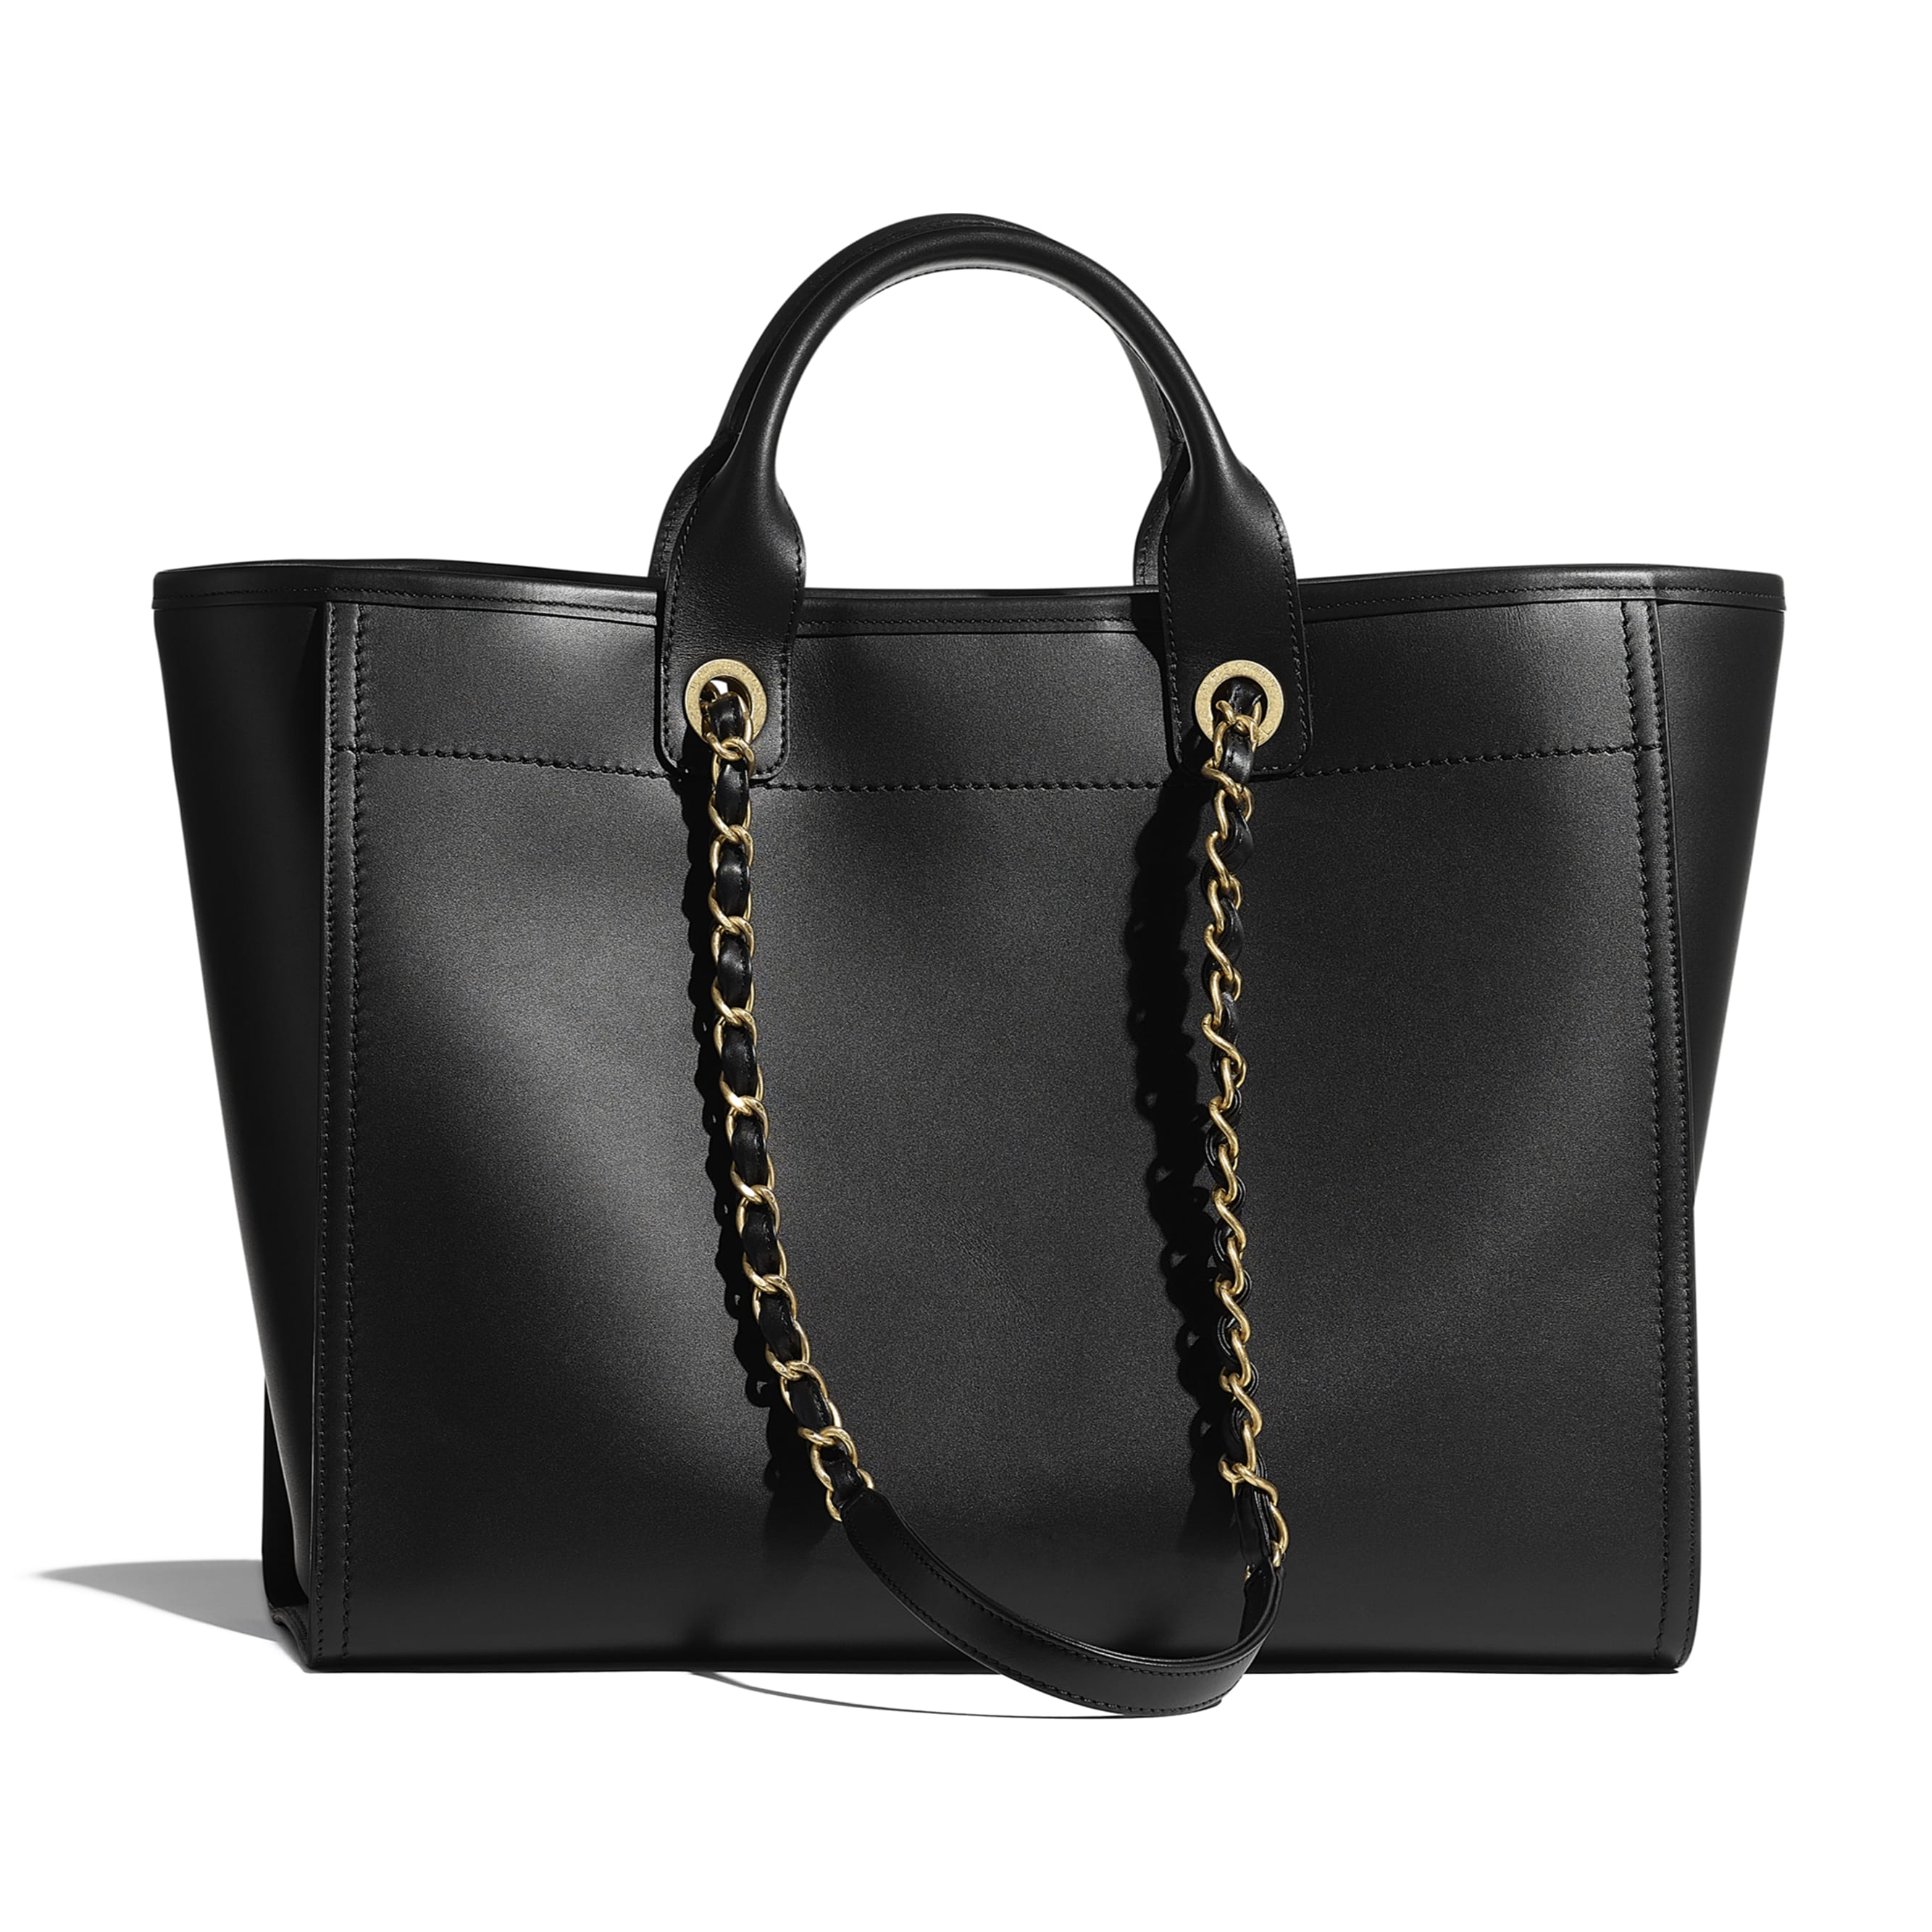 Large Tote - Black - Calfskin & Gold-Tone Metal - CHANEL - Alternative view - see standard sized version